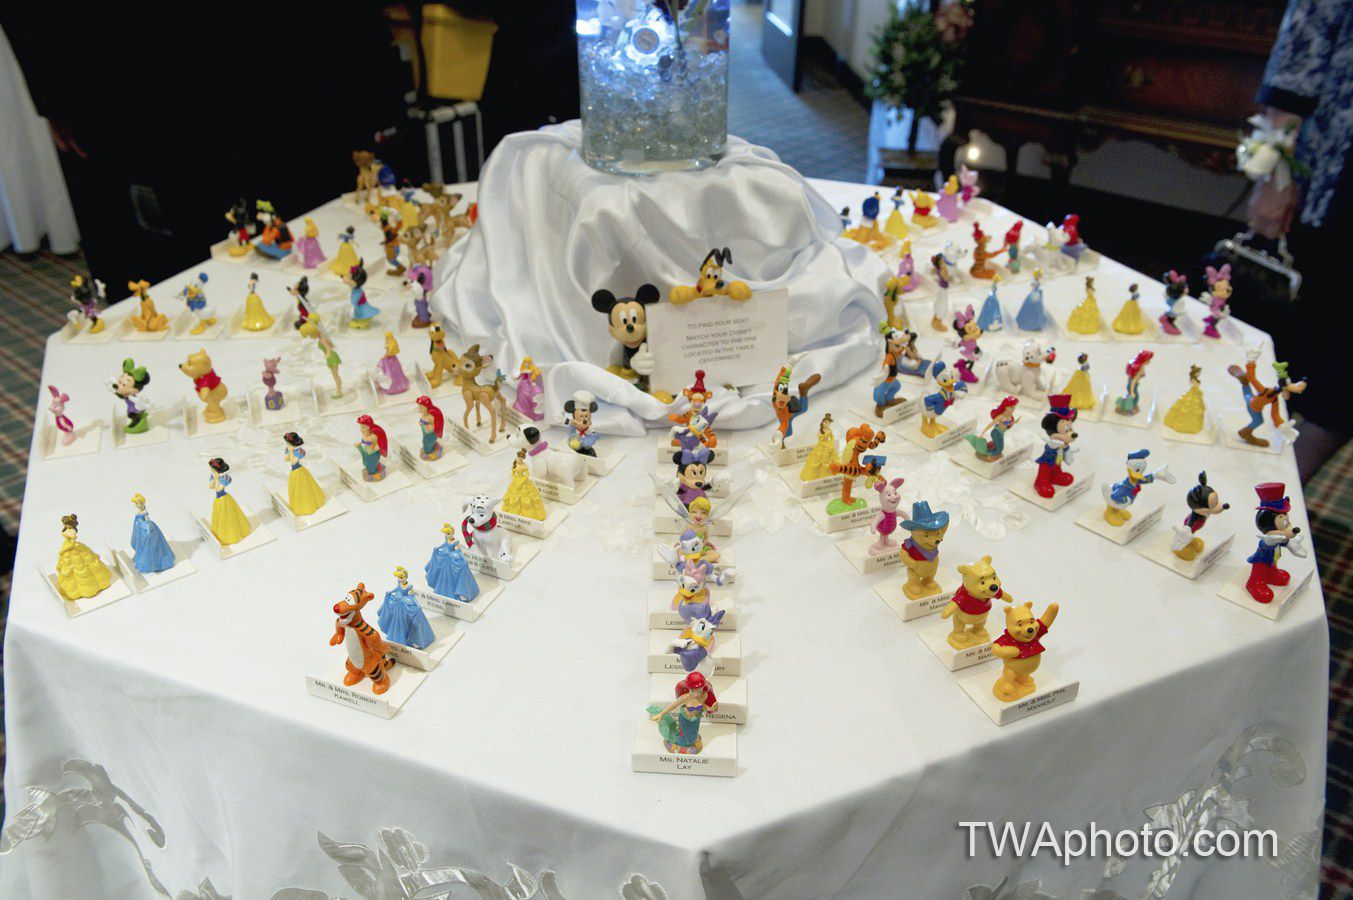 Have The Wedding Guest Match Their Disney Character To The Table